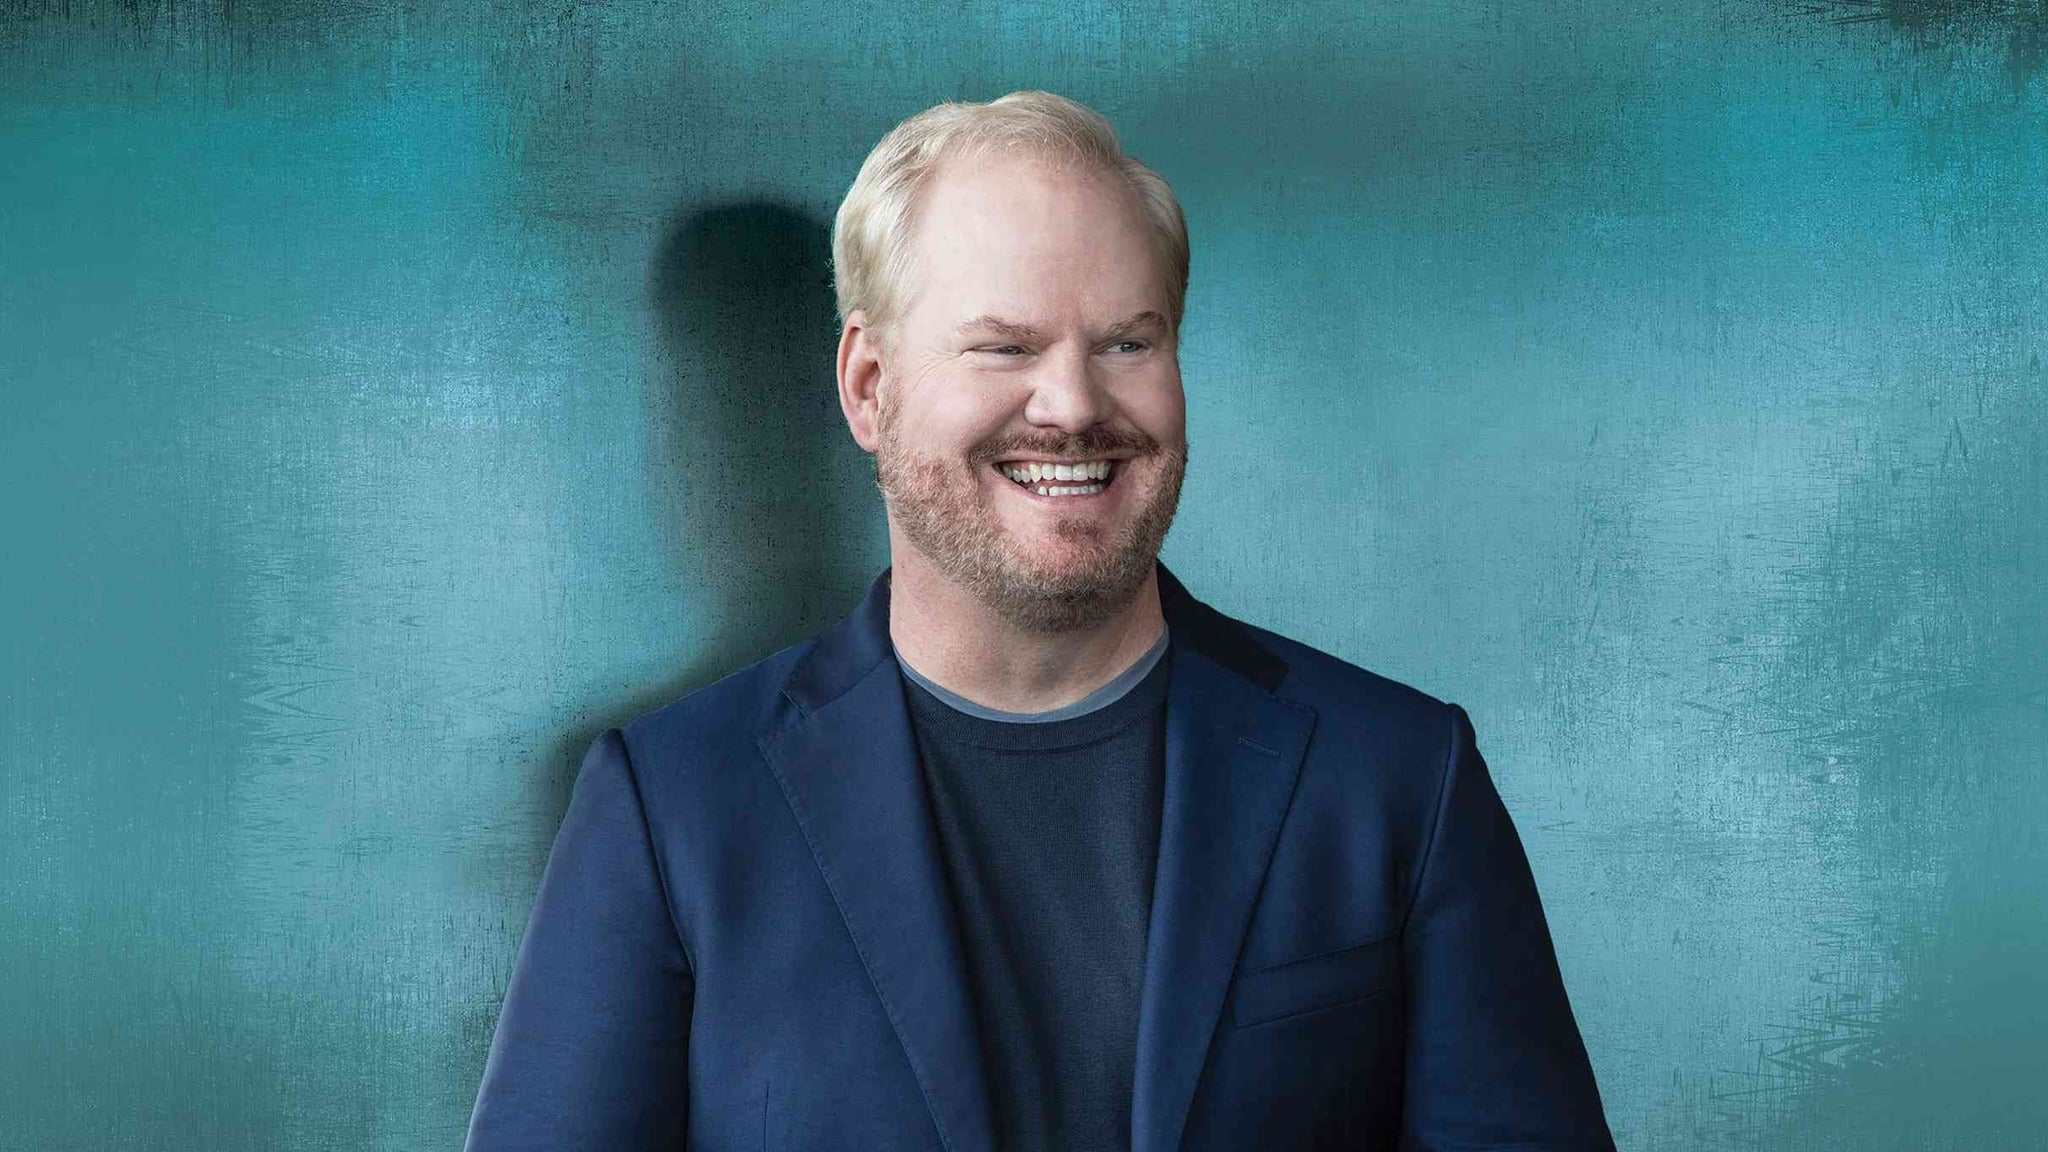 Jim Gaffigan at Borgata Casino Event Center - Atlantic City, NJ 08401